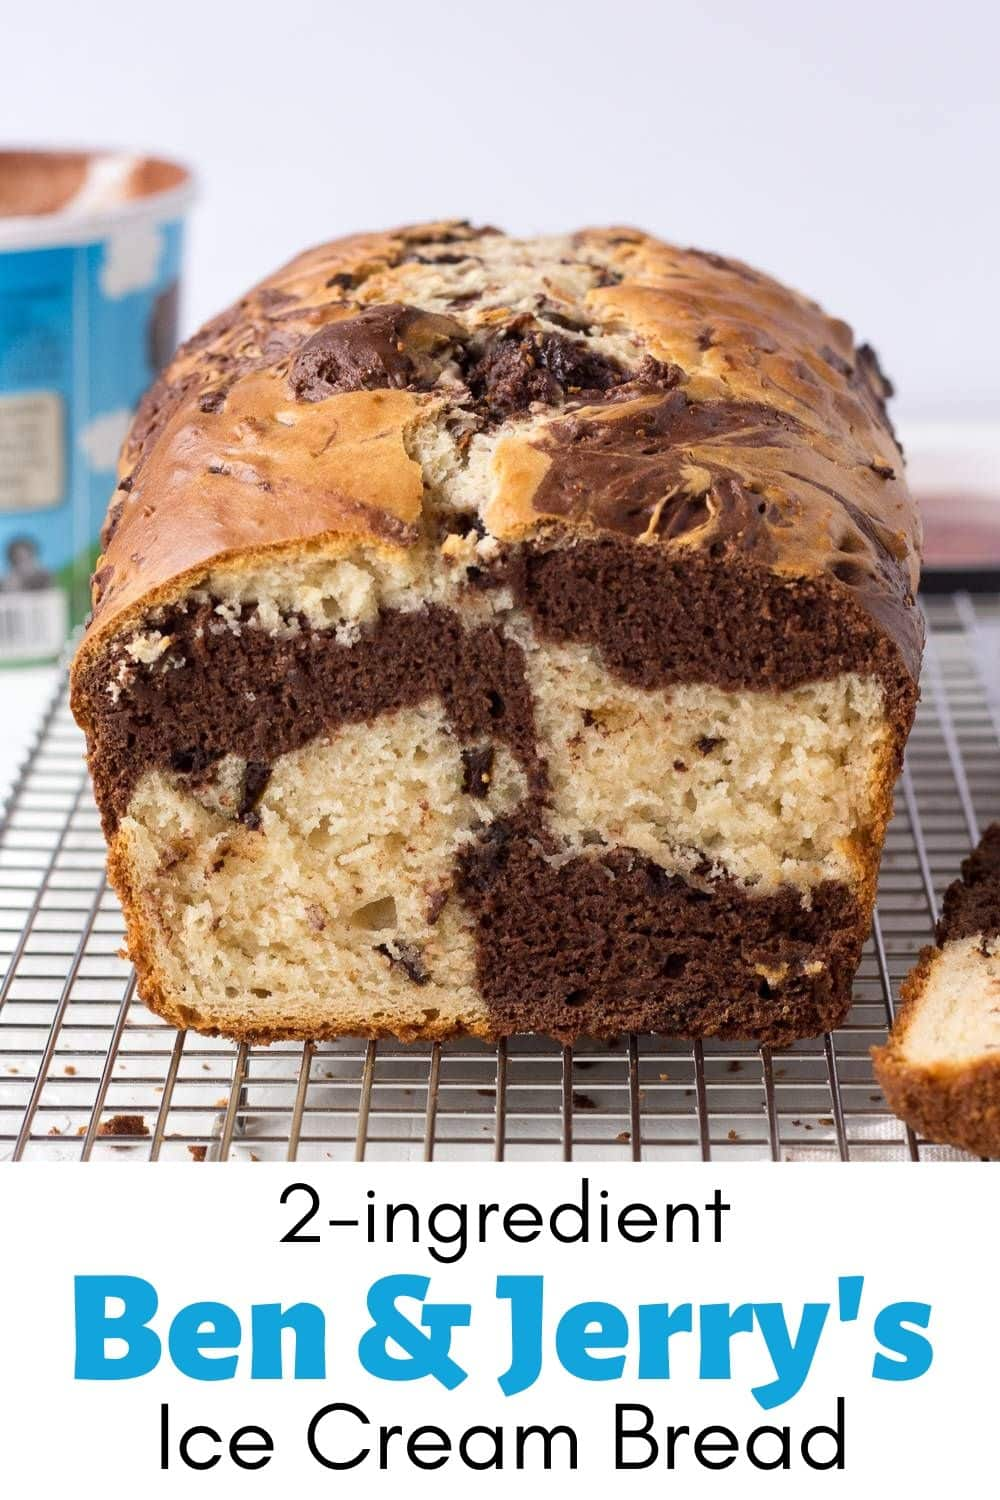 Ben and Jerry's Ice Cream Bread